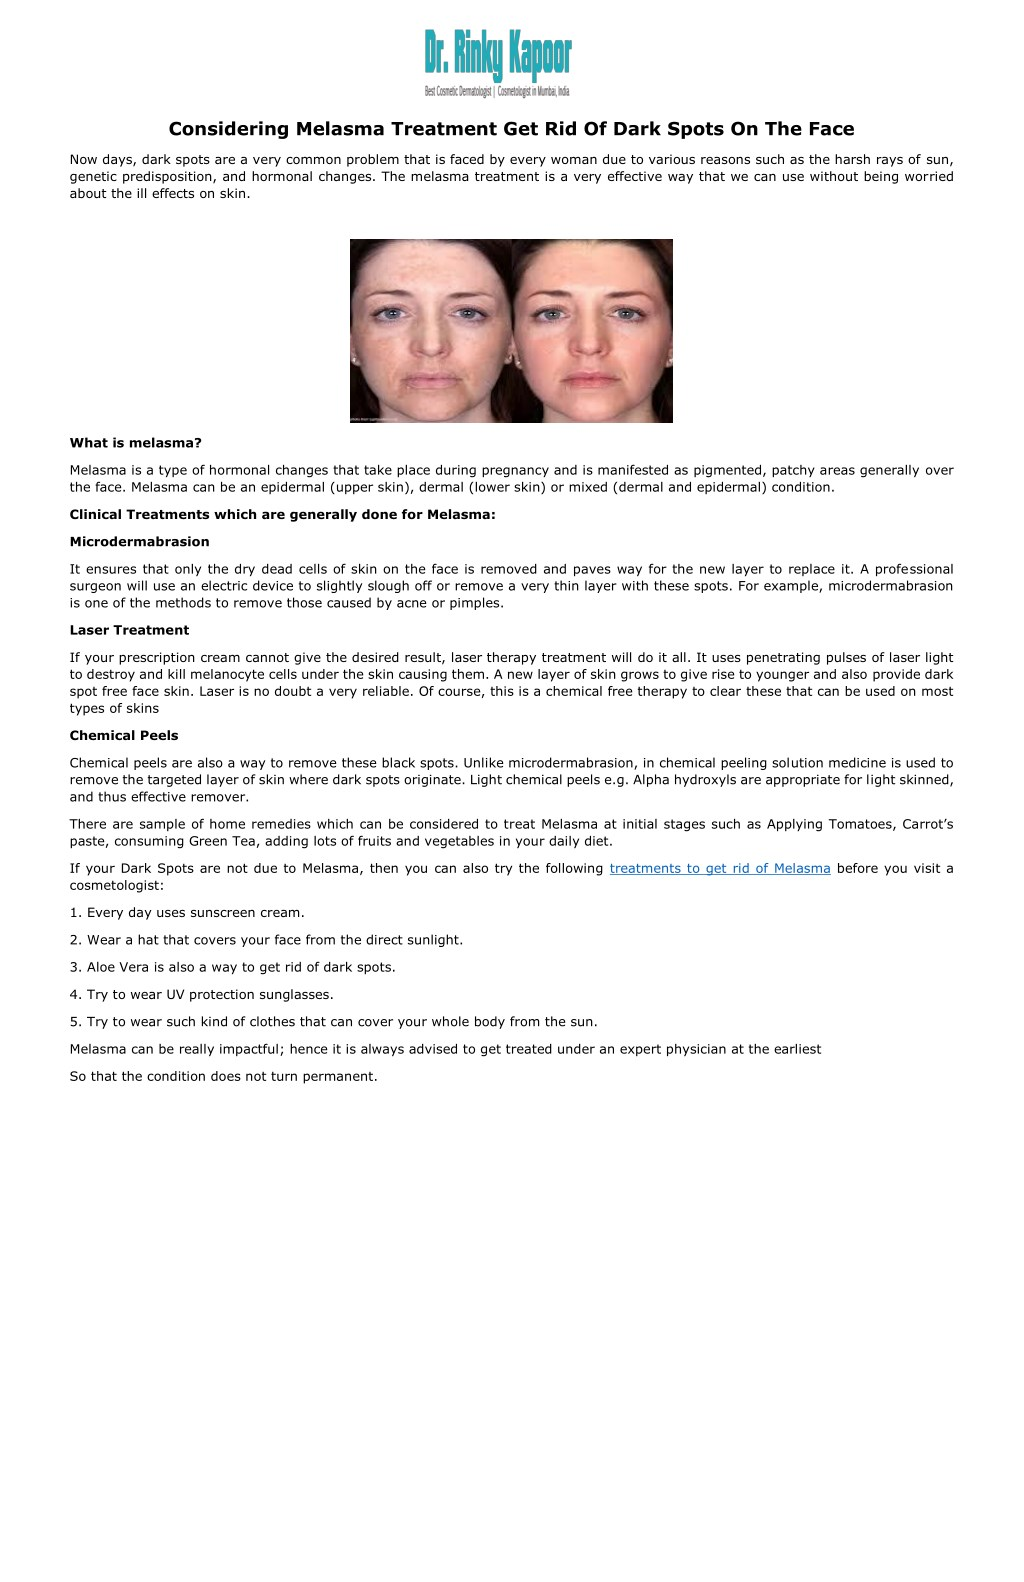 PPT - Considering Melasma Treatment Get Rid Of Dark Spots On